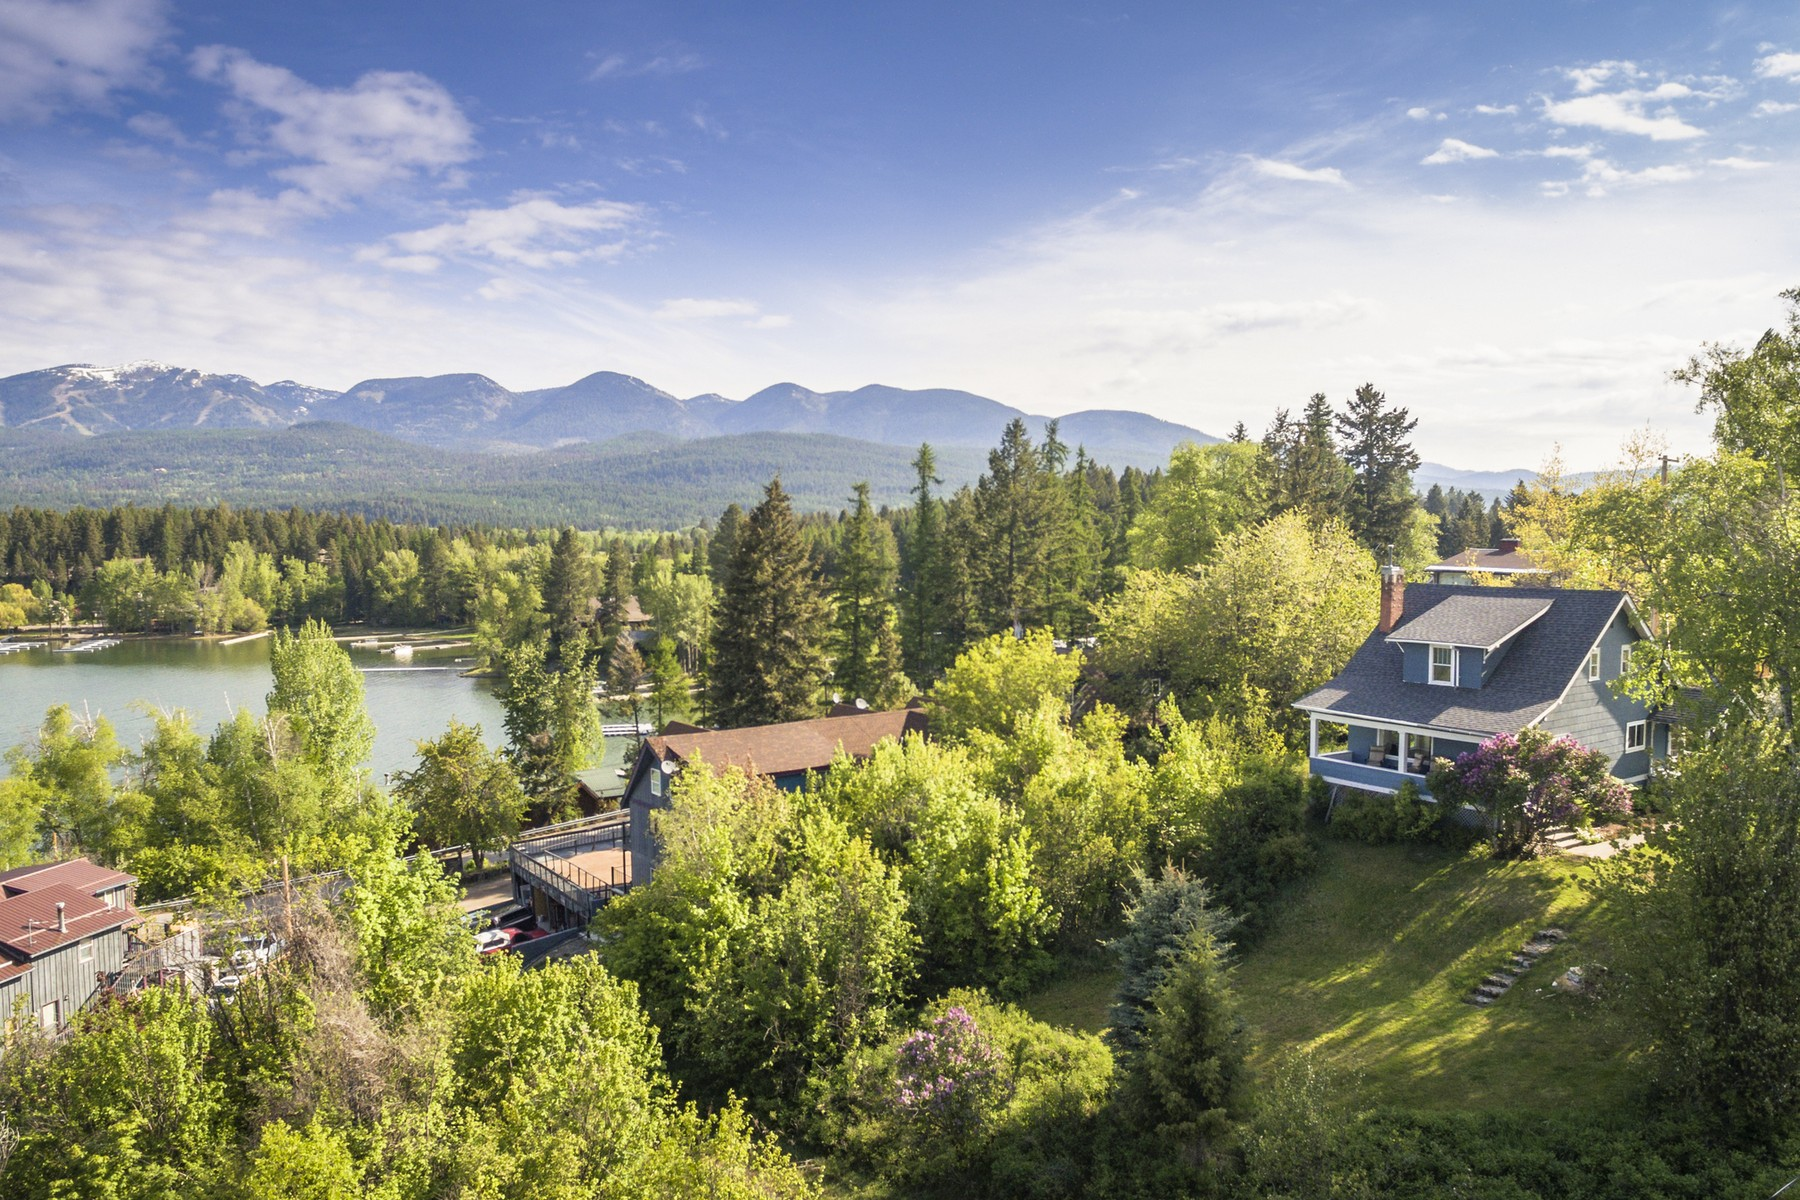 Property For Sale at Hilltop Home Overlooking Whitefish Lake Montana